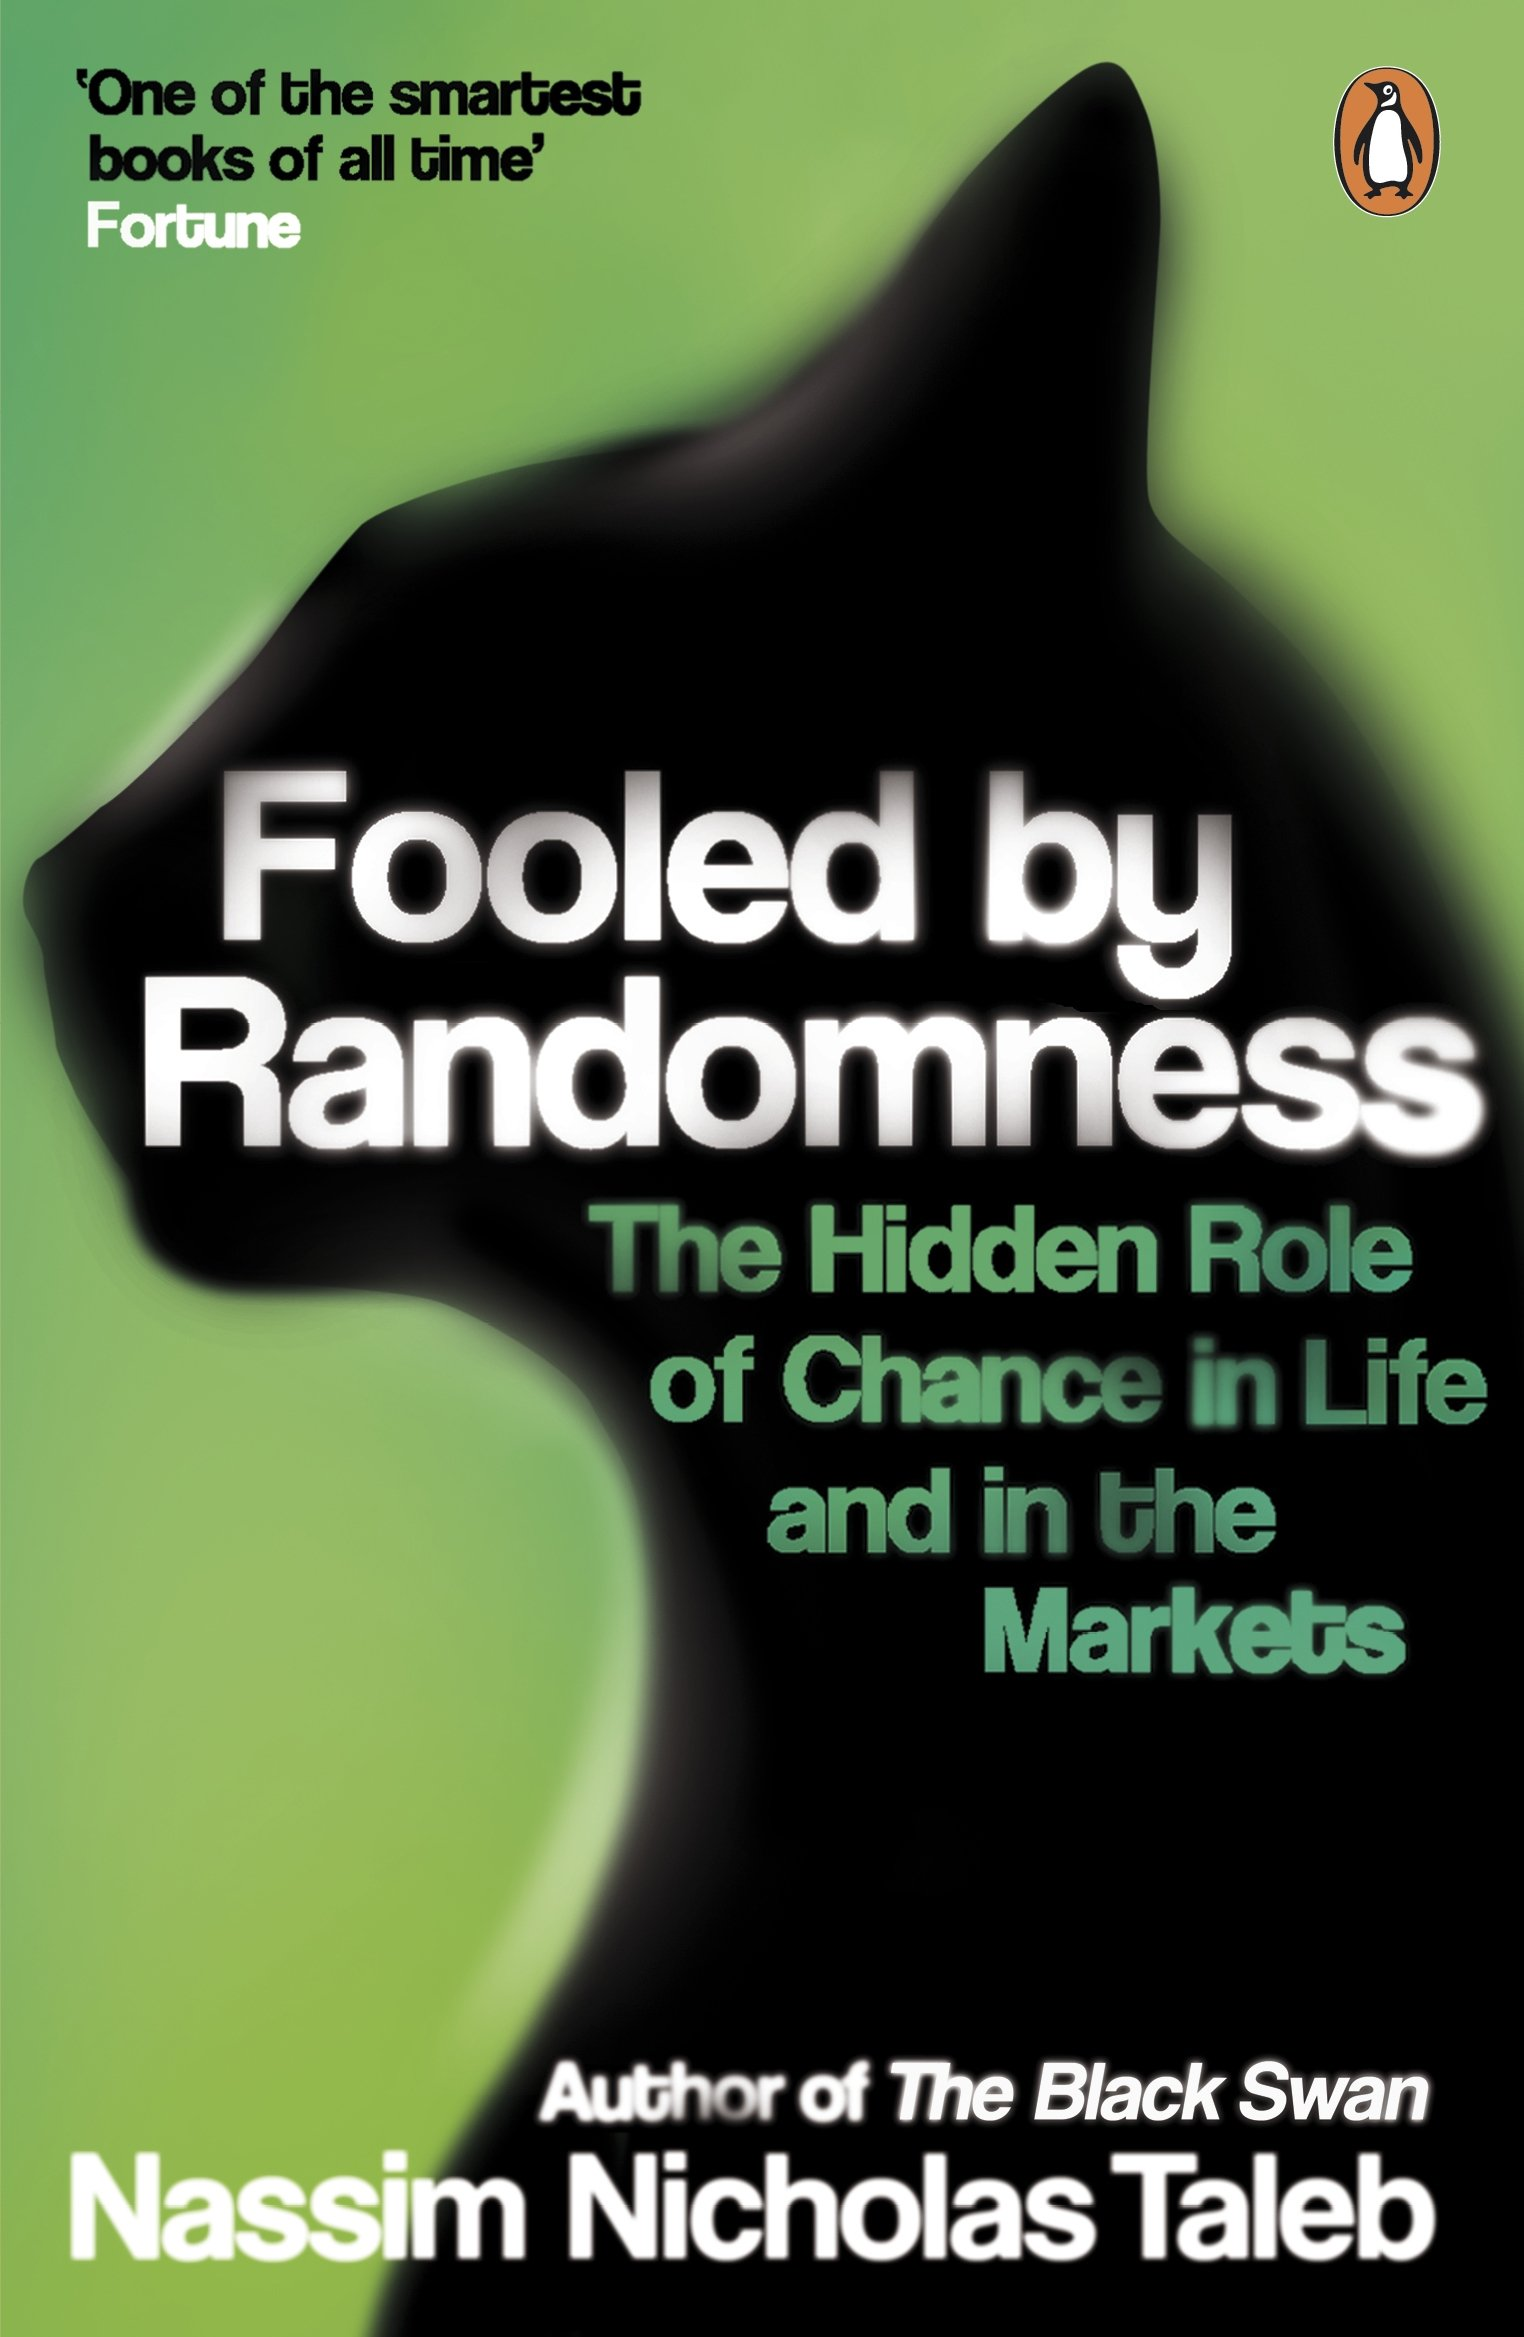 Fooled By Randomness: The Hidden Role of Chance in Life and in the Markets By Nassim Nicolas Taleb